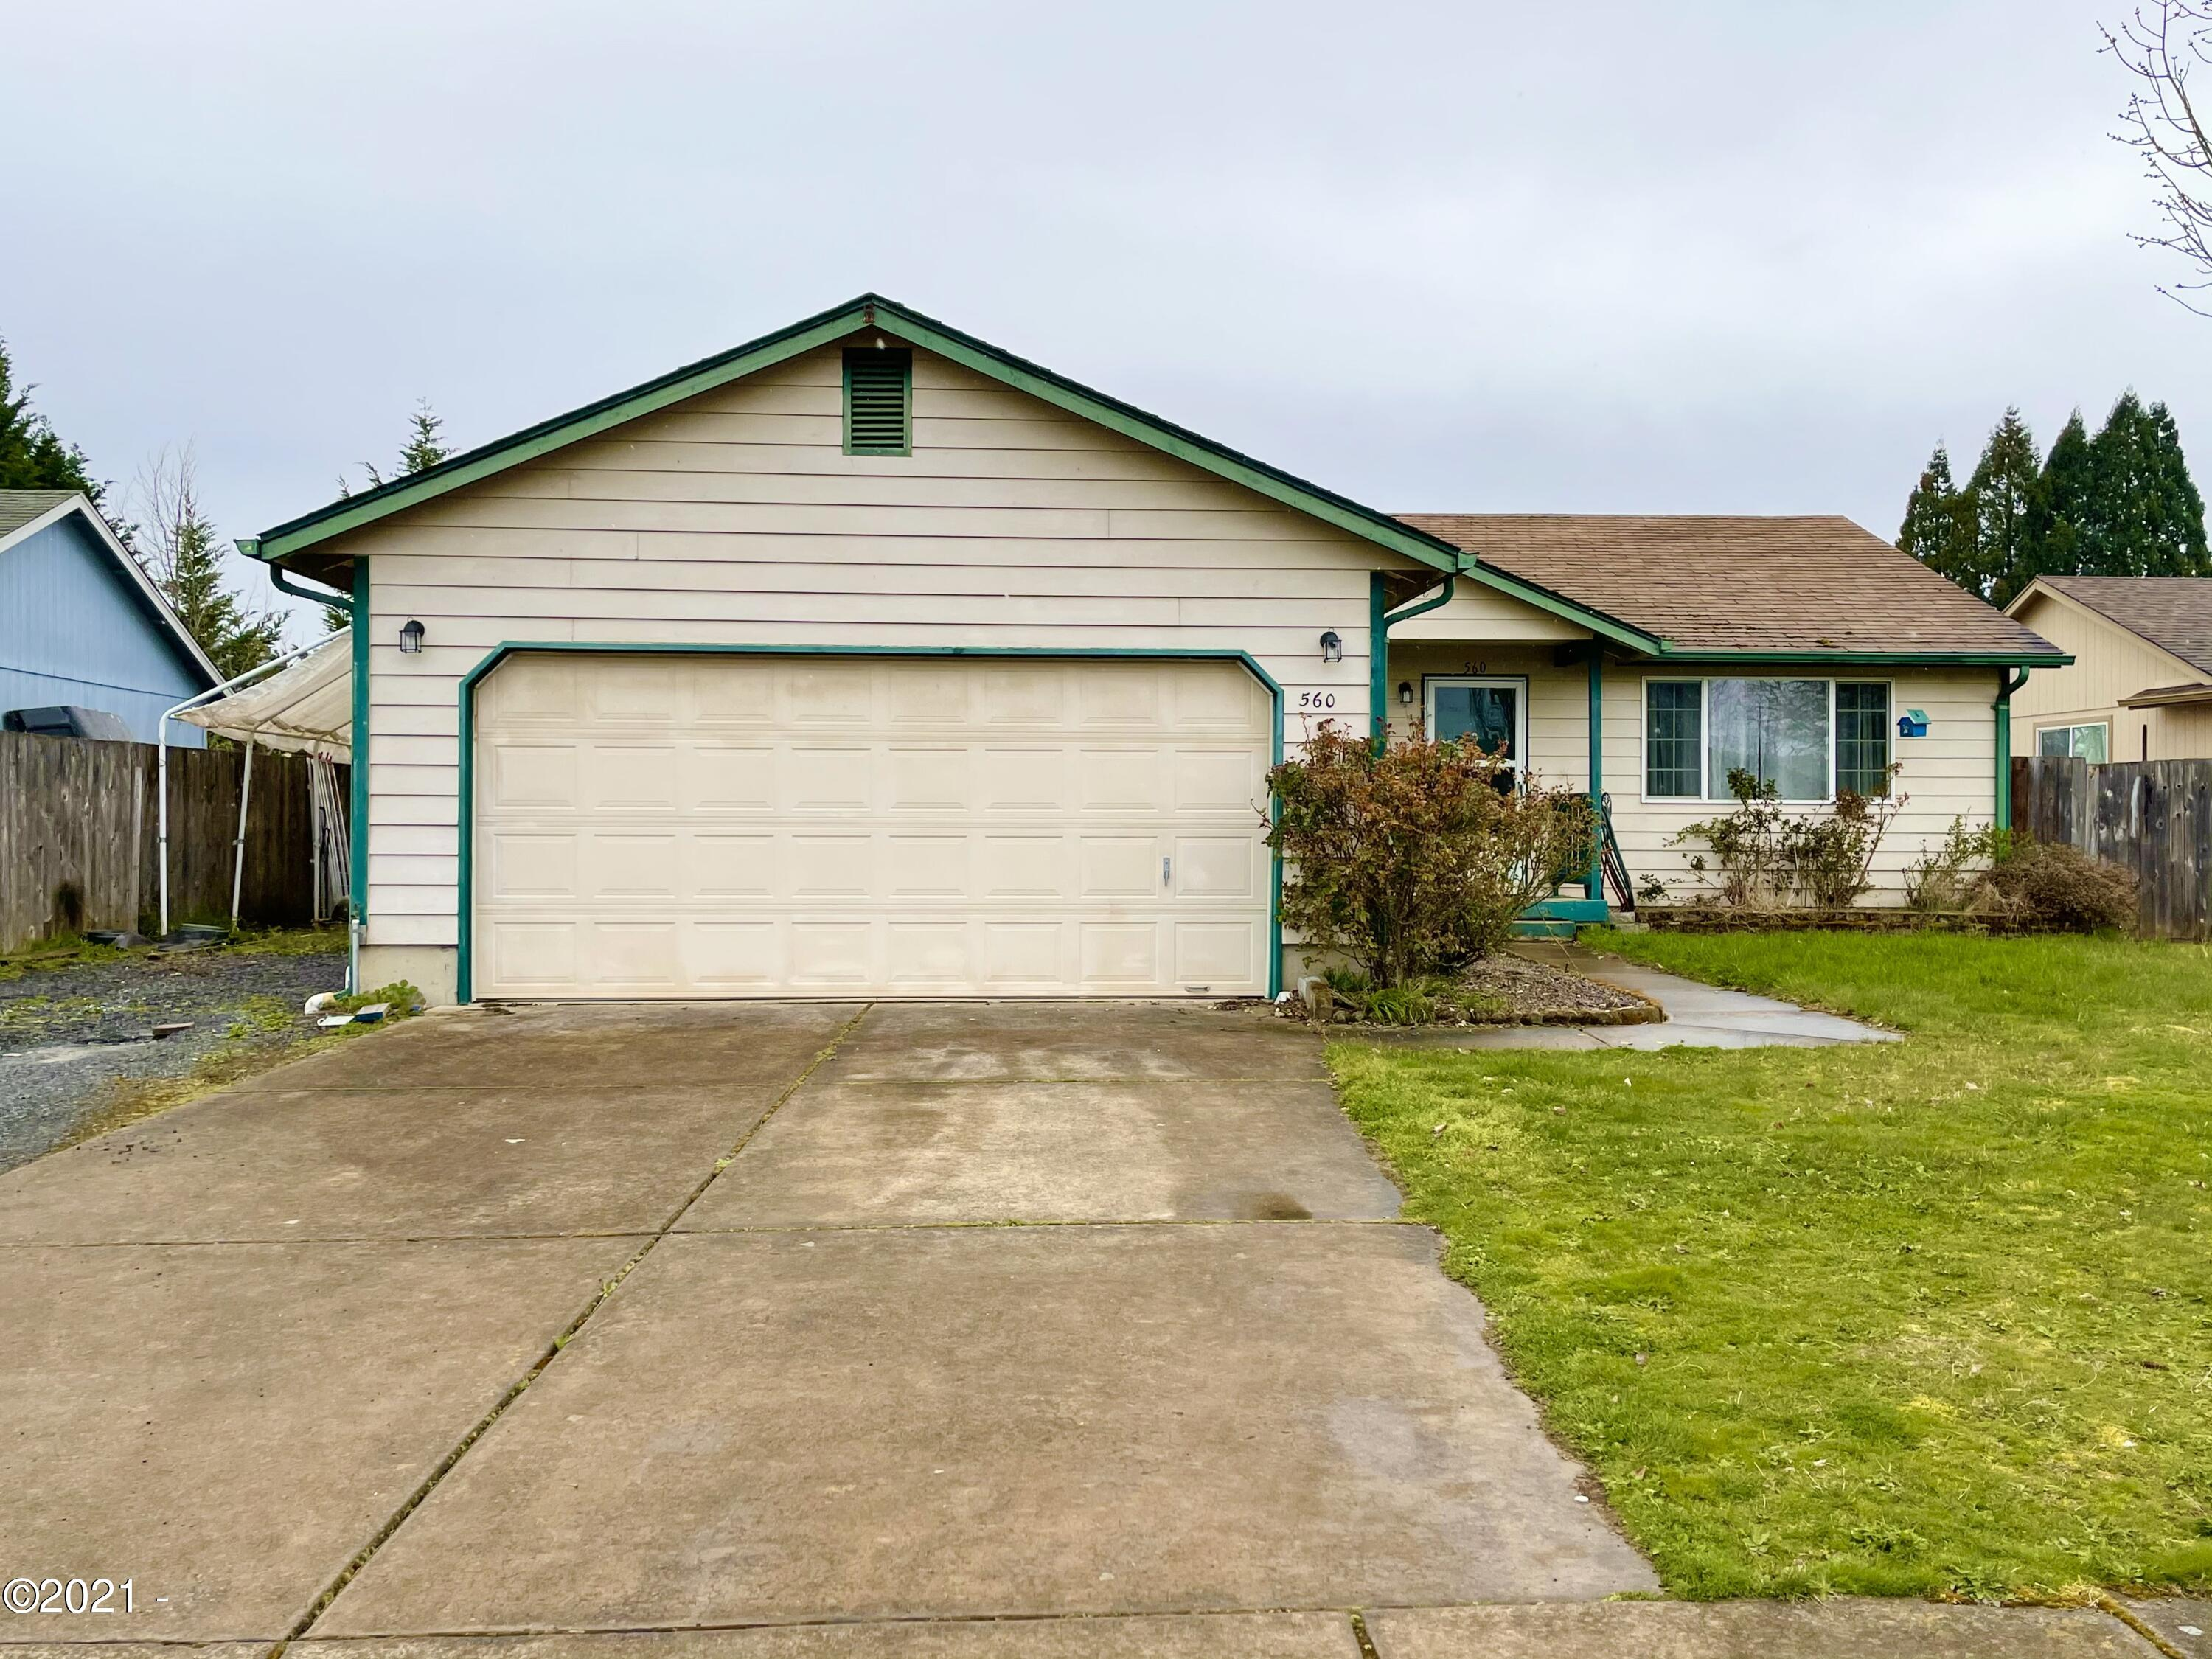 560 Mccall Way, Philomath, OR 97370